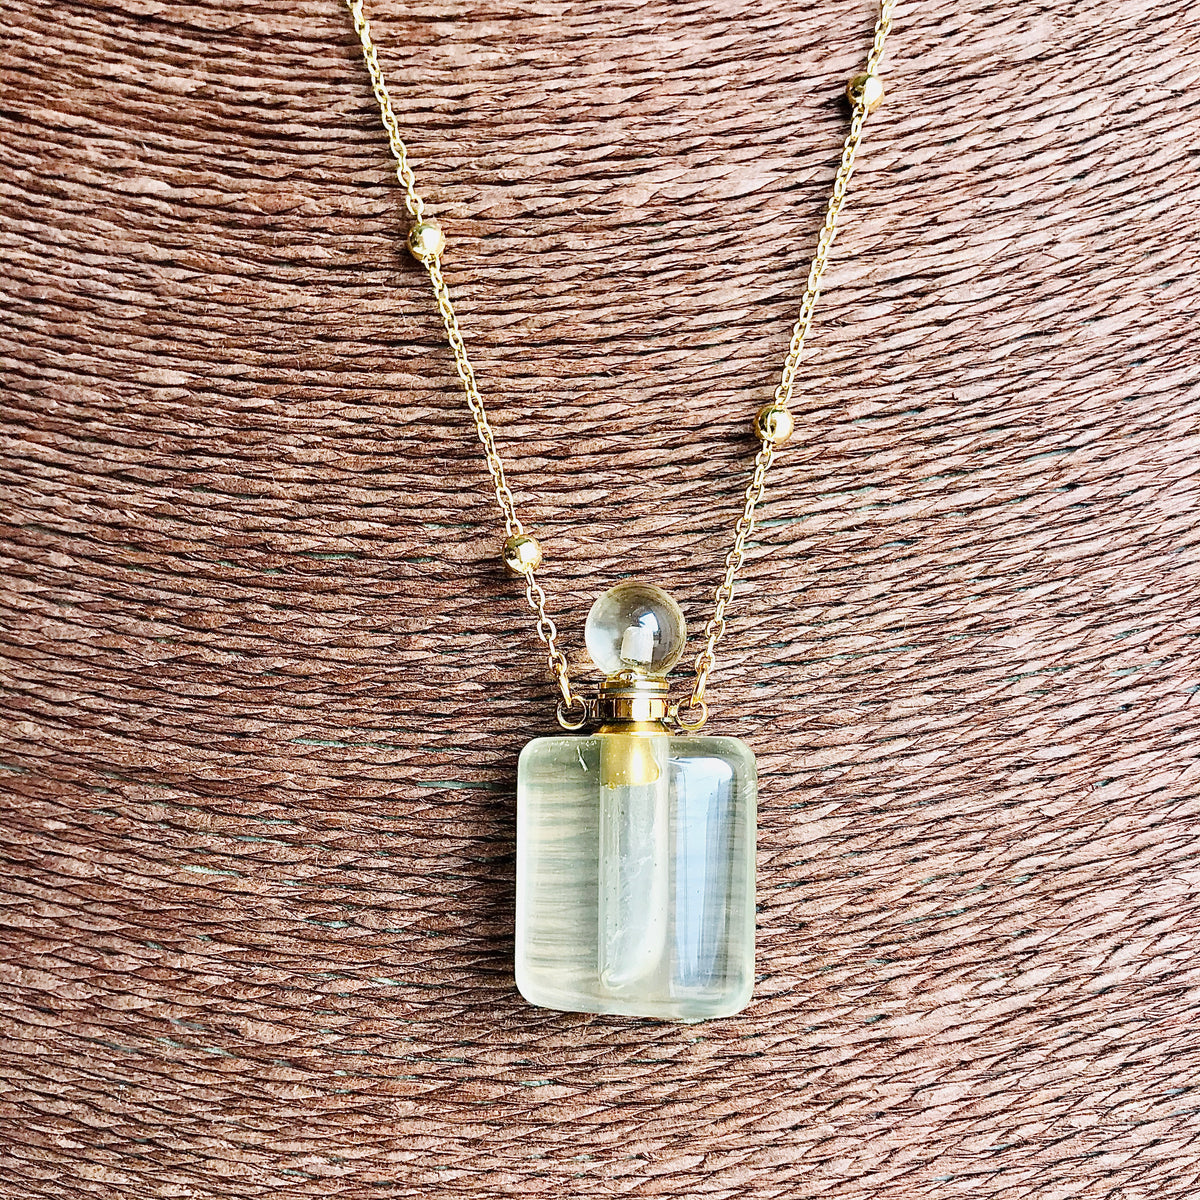 Crystal Perfume Vial necklaces